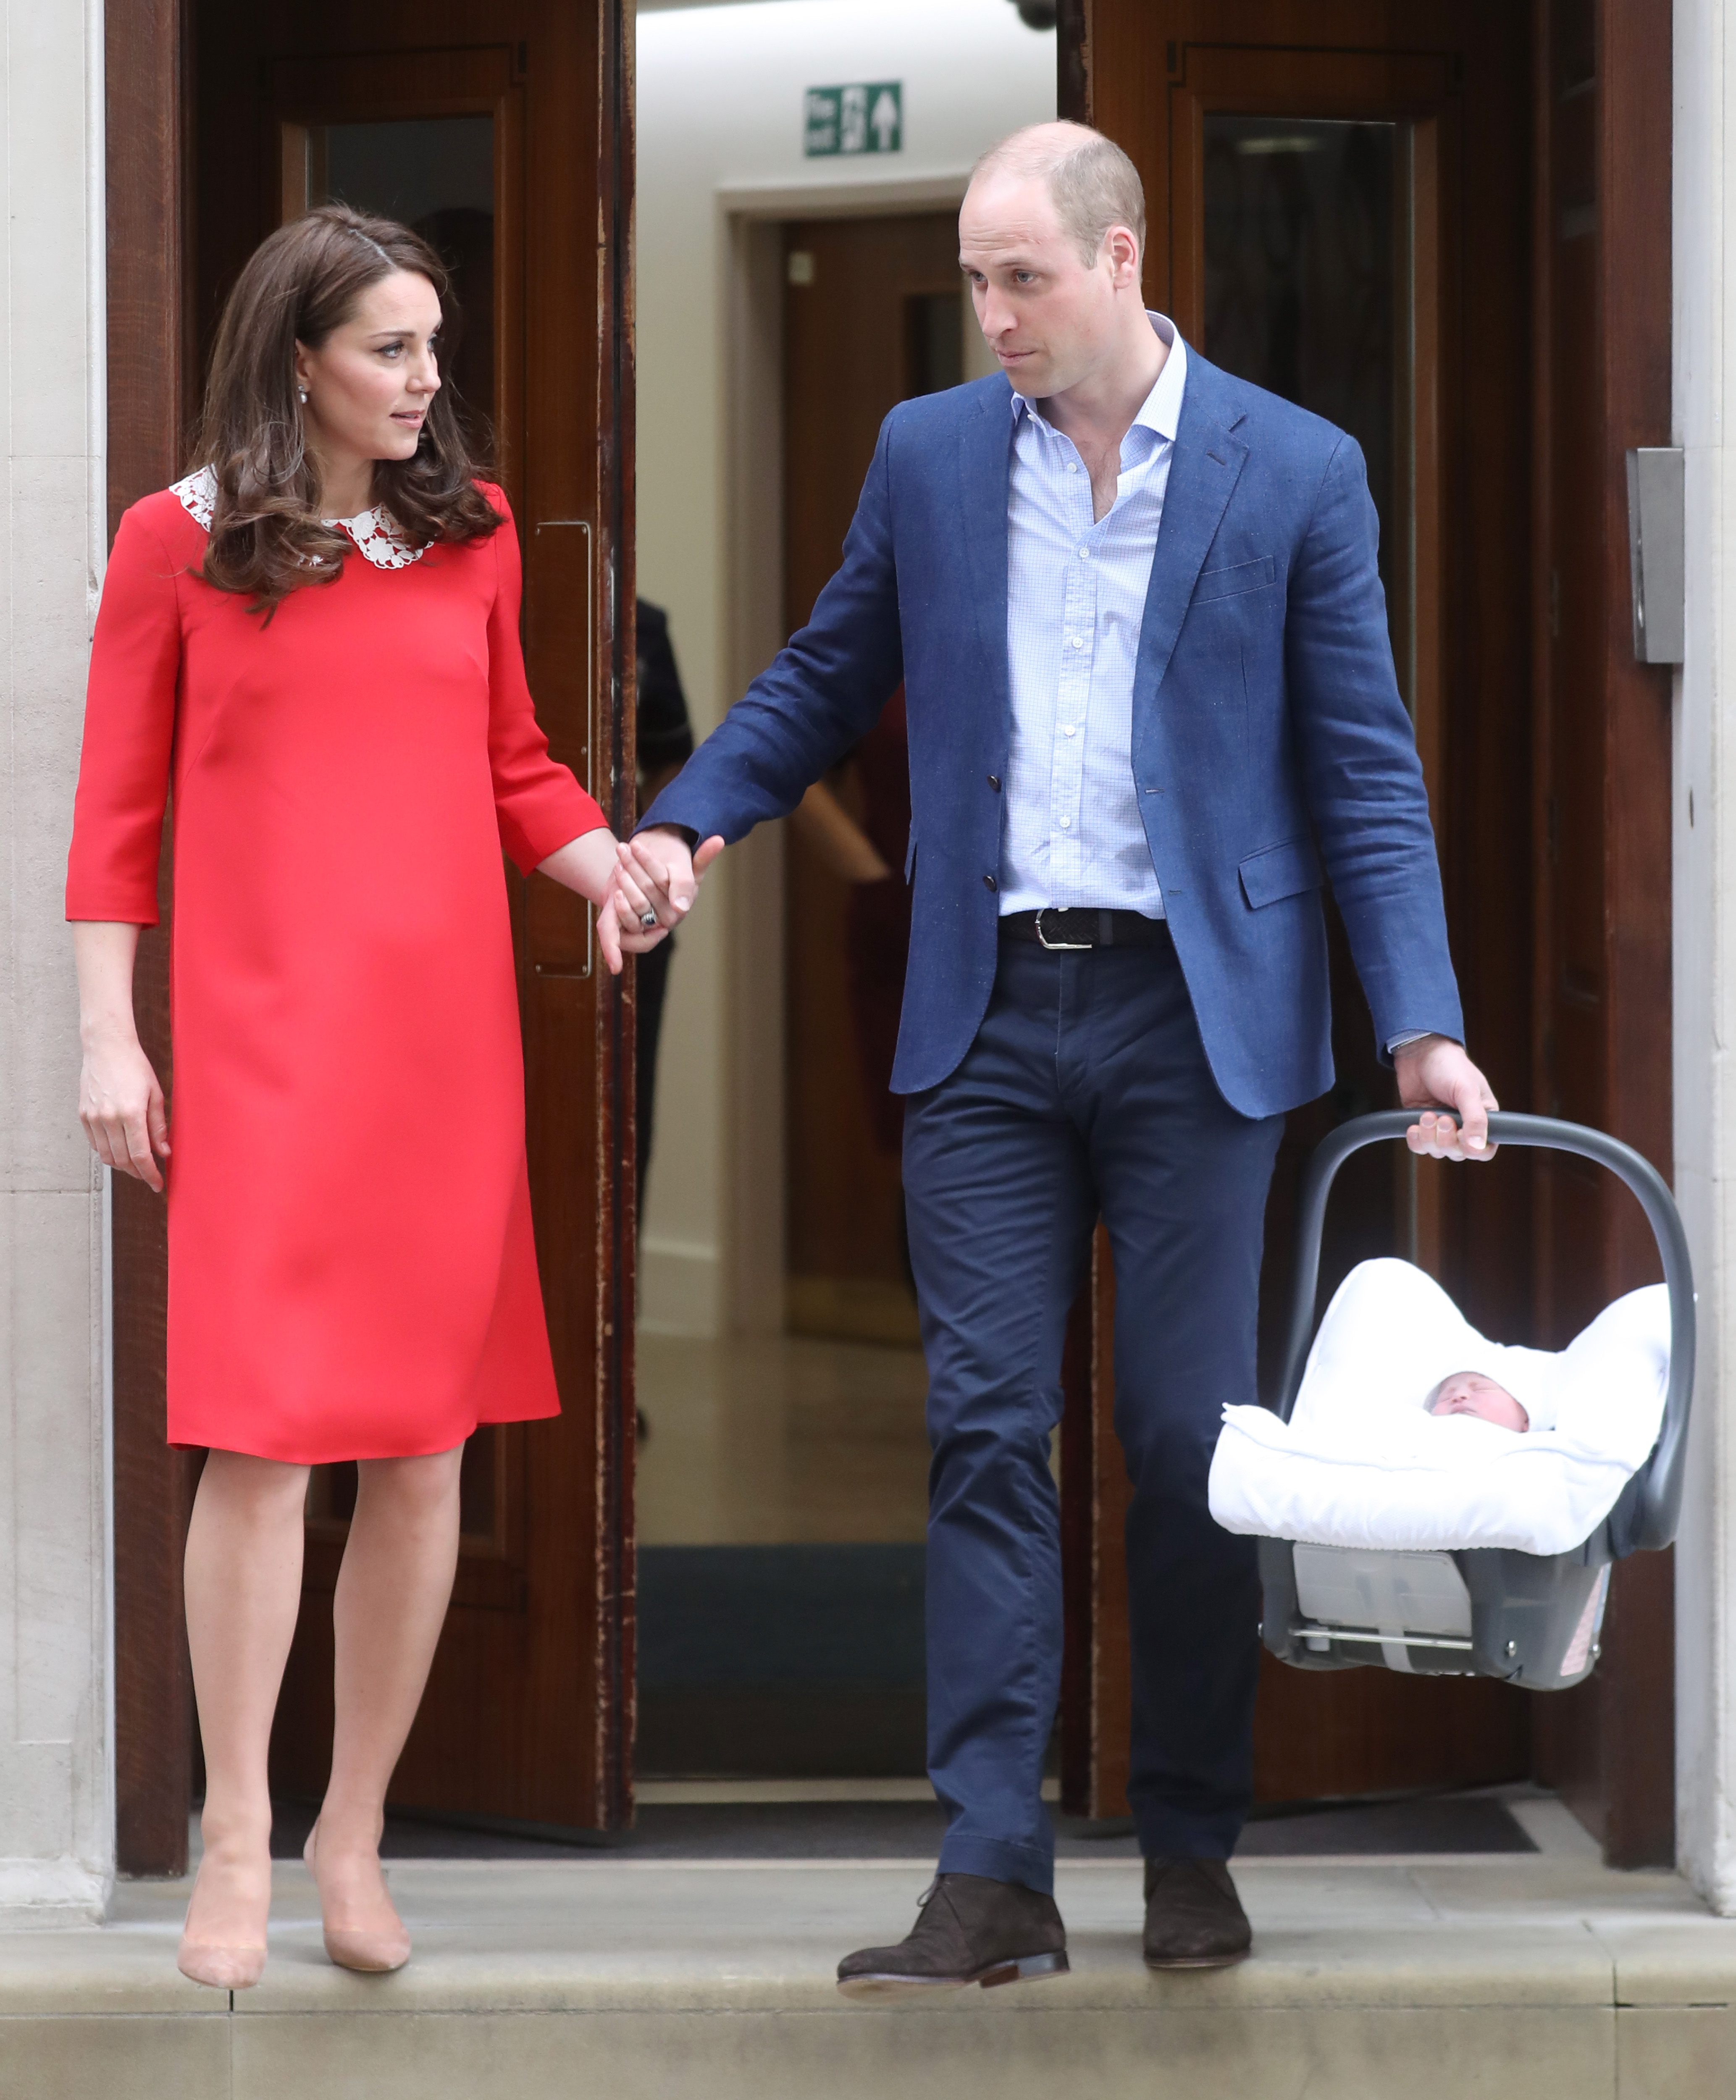 Royal Overlords May Have Flubbed Tech To Accidentally Reveal Baby Name